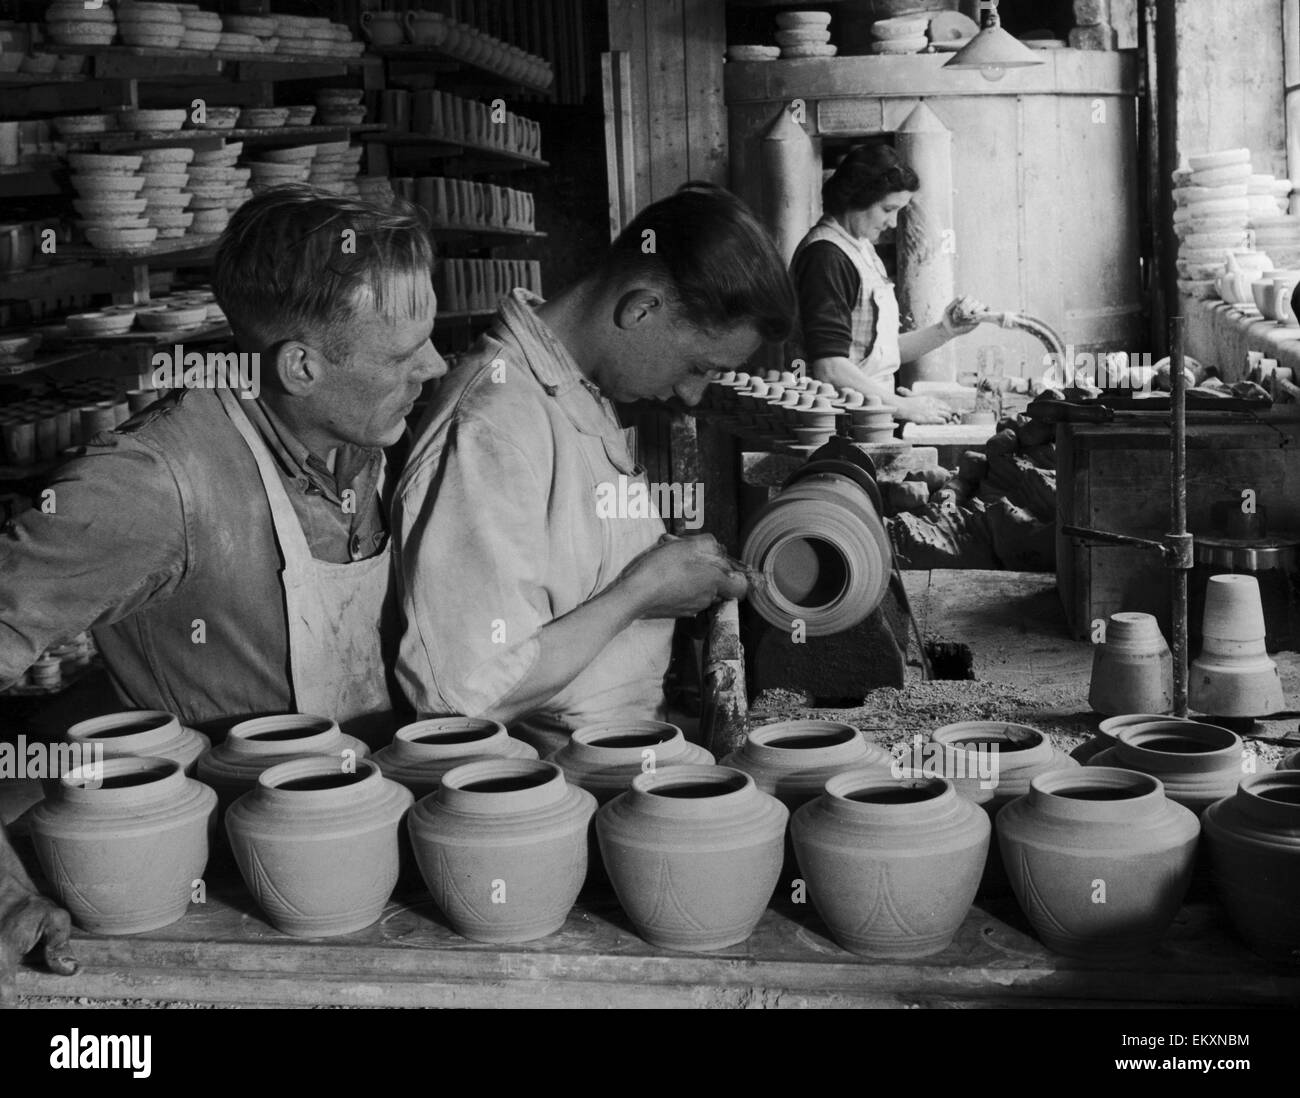 Seventeen year old Len Mills, apprenticed turner of teapots and teapot lids at a Stoke On Trent pottery, produces - Stock Image